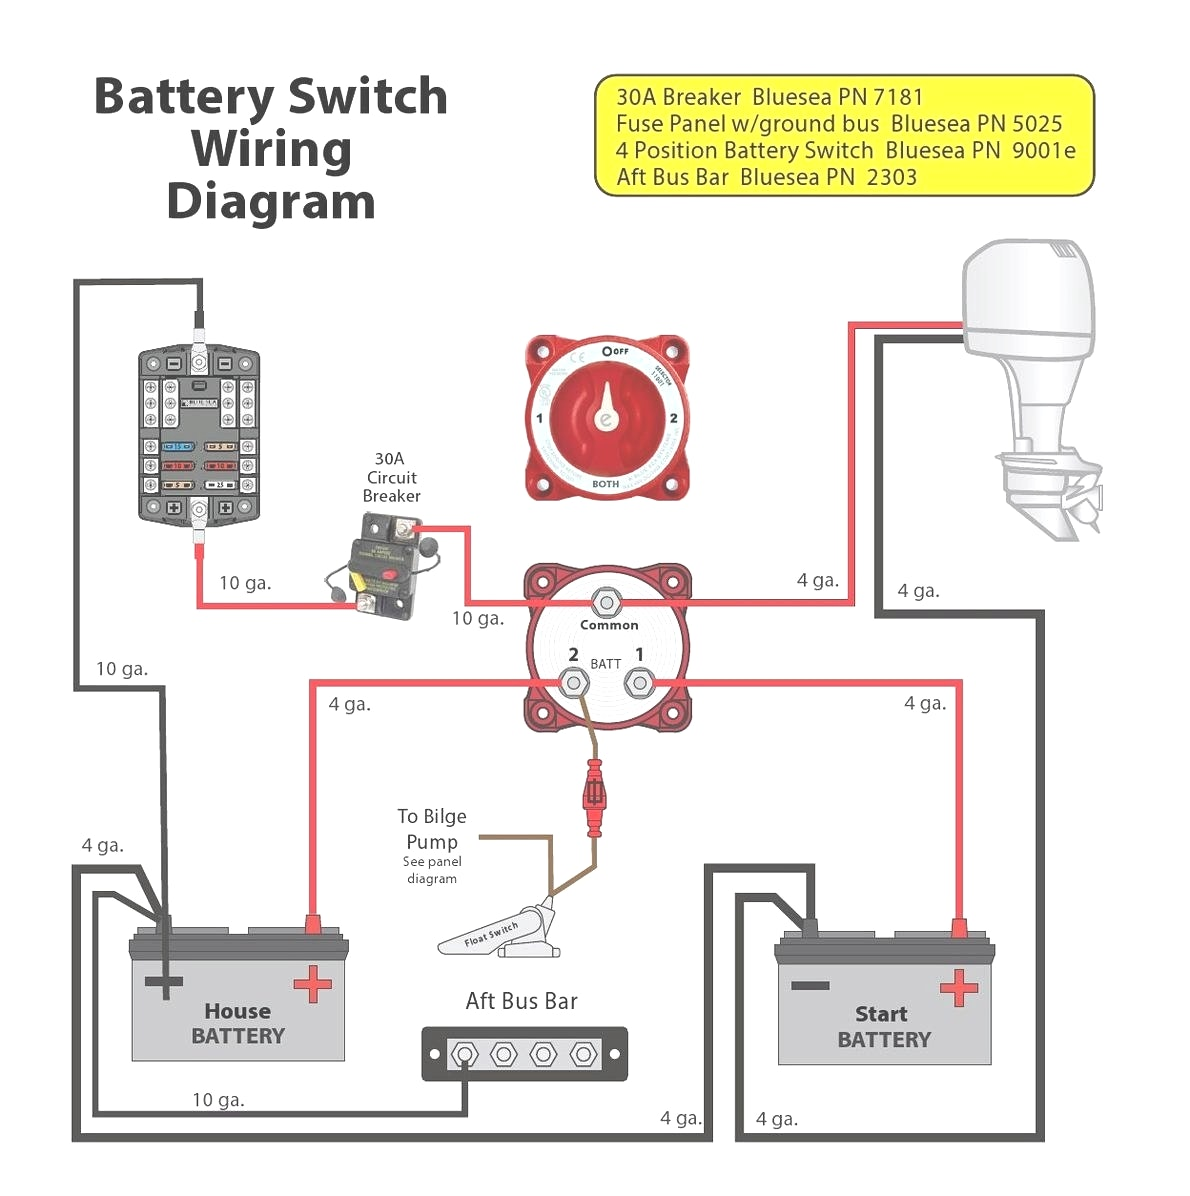 fuse box in boat hy 1795  wiring diagram as well as 12 volt marine fuse block  wiring diagram as well as 12 volt